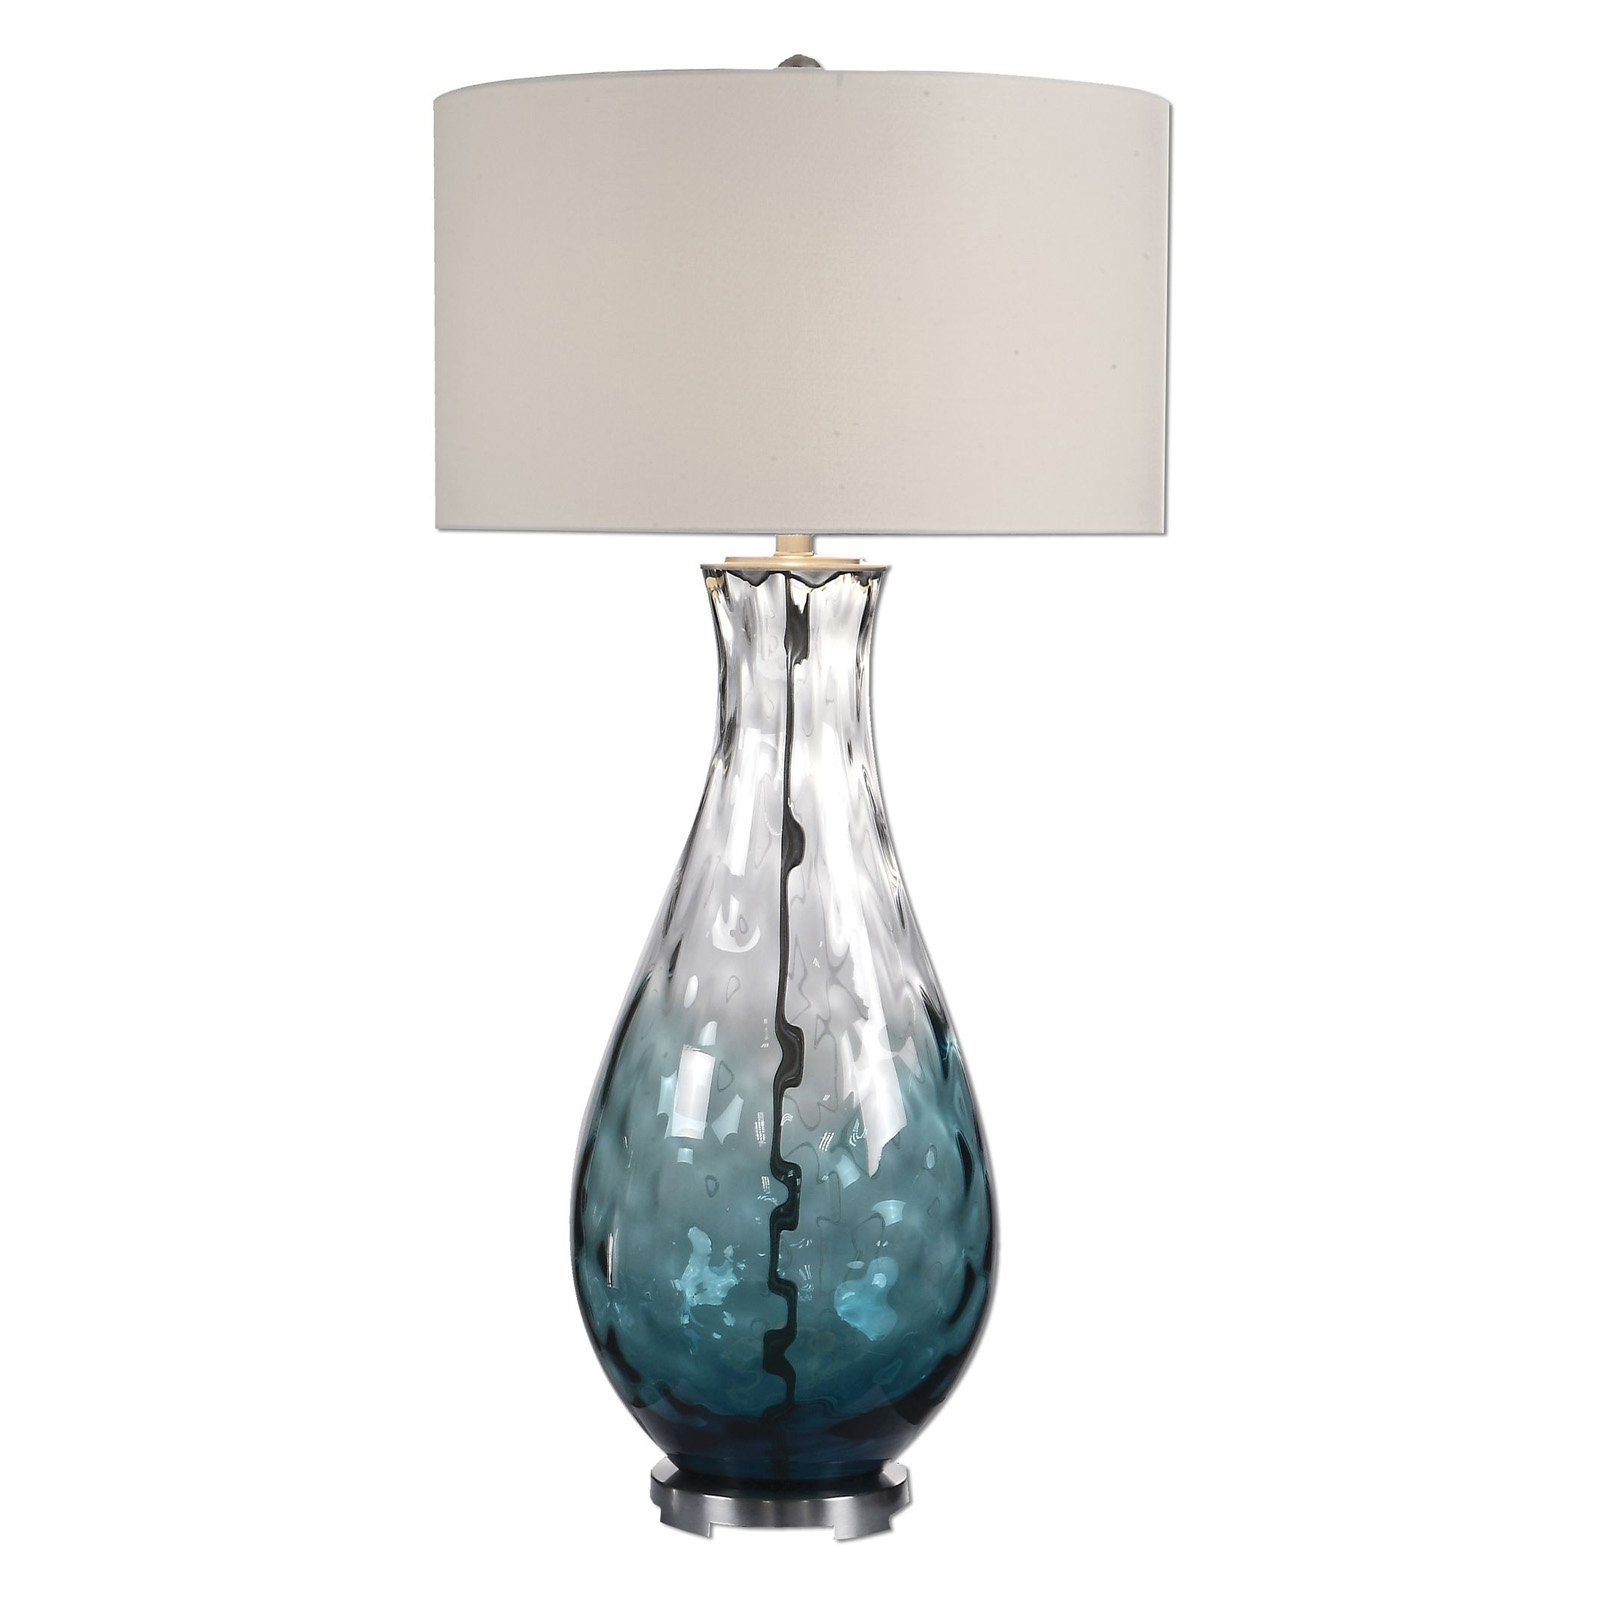 Newest Living Room Table Lamps At Target Pertaining To Top 55 Tremendous Pair Of Table Lamps Target Clear Glass Lamp Large (View 13 of 15)